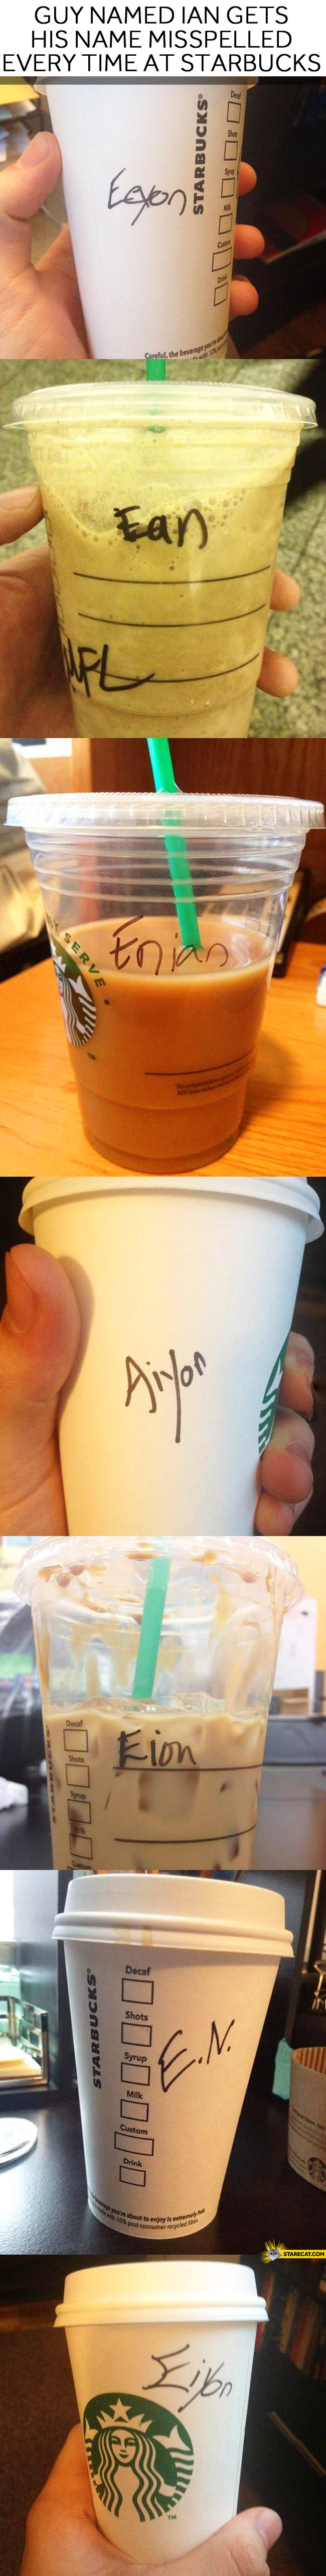 Guy named Ian Starbucks name fail